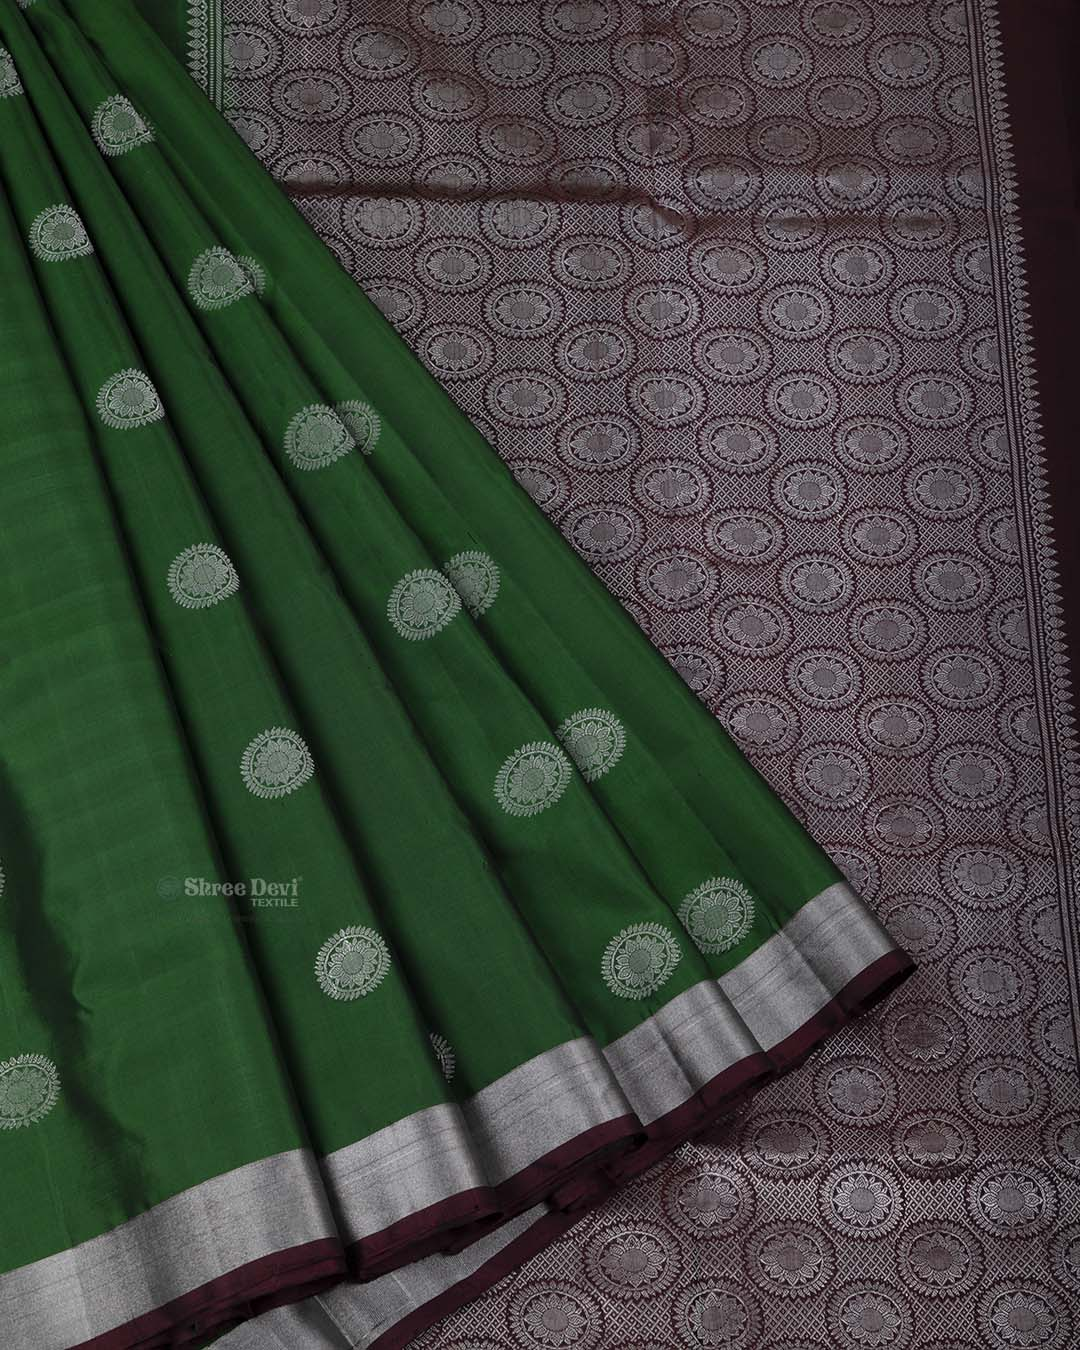 Dark Forest Green Elite Motif Kancheevarams Silk Saree with Silver Floral Zari Motifs